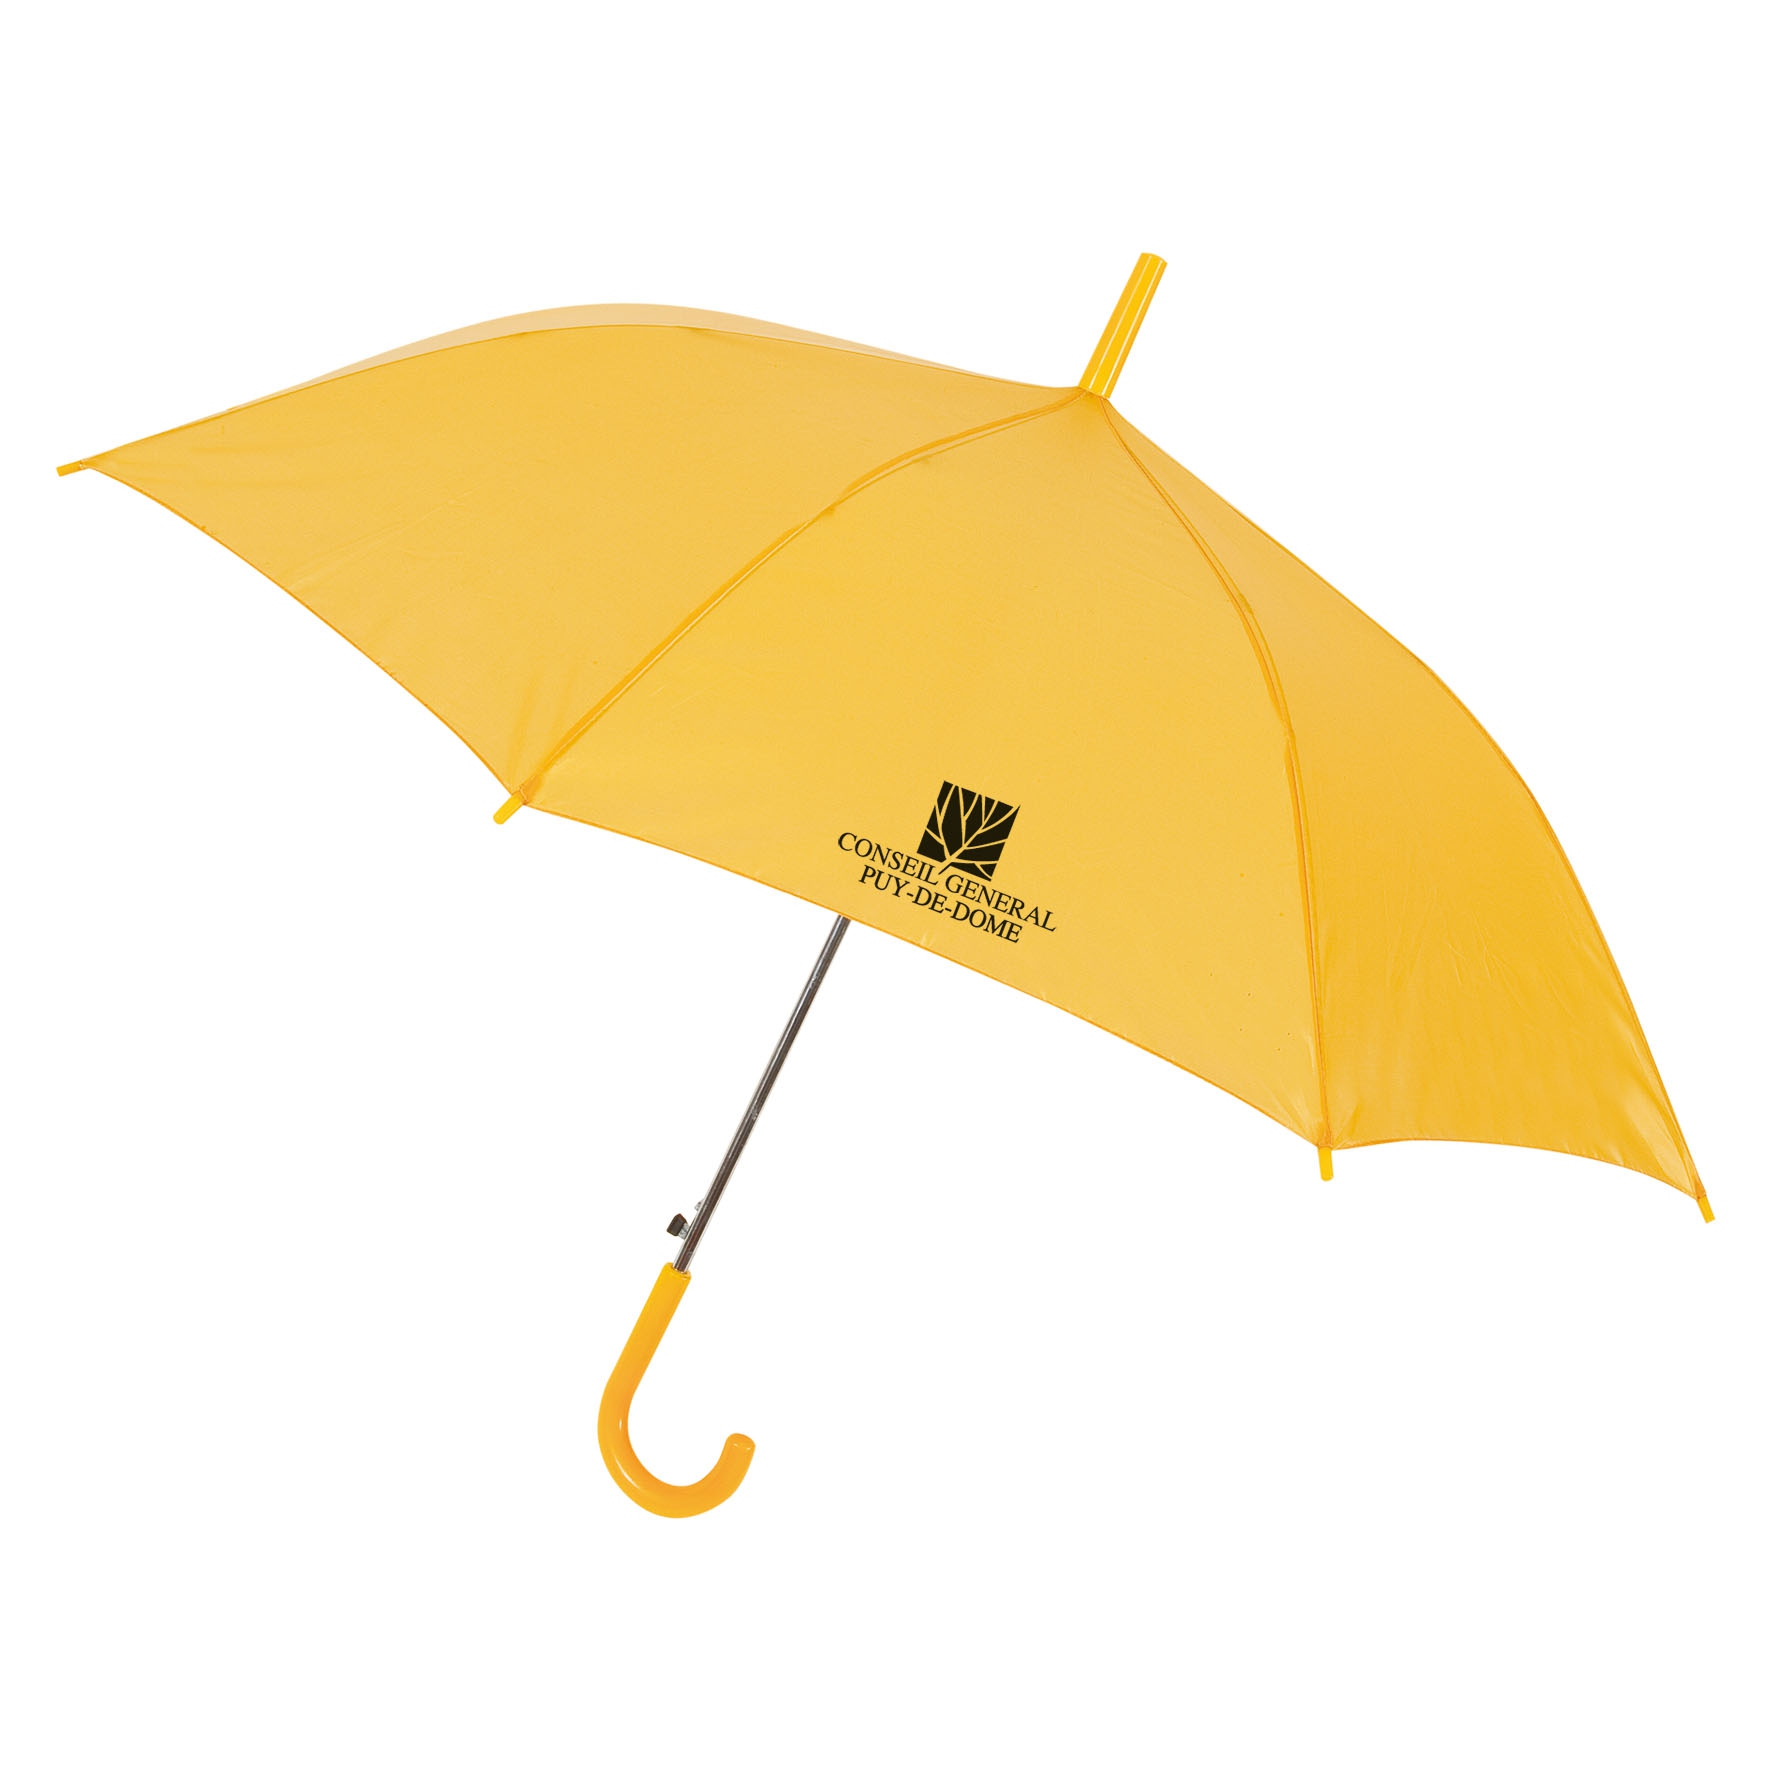 Parapluie promotionnel canne Glav - Parapluie personnalisable